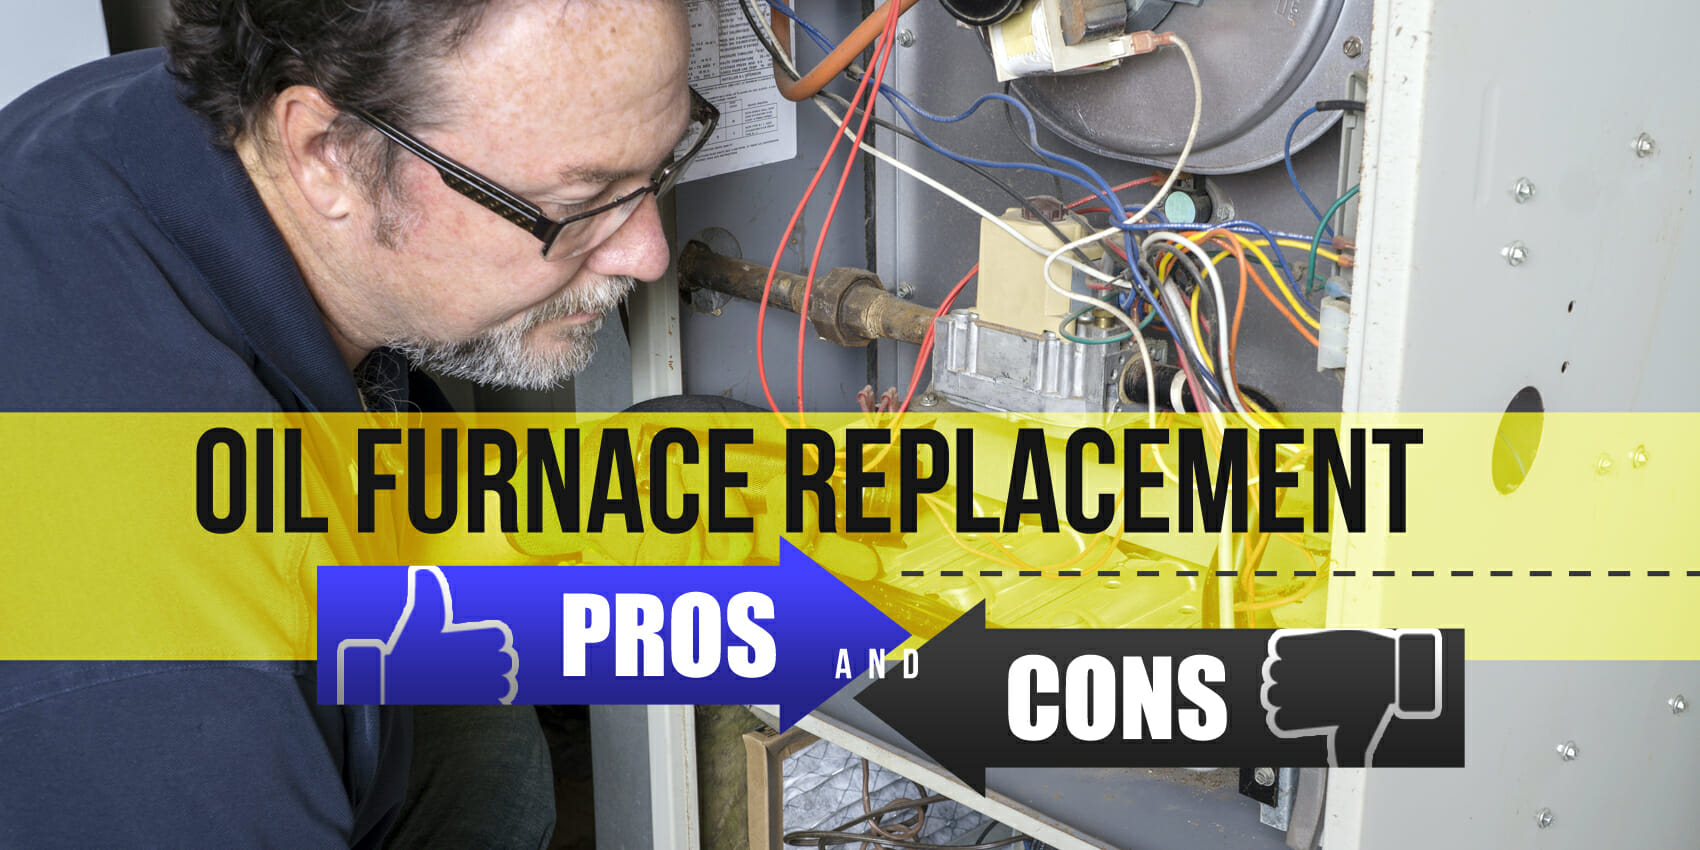 Oil Furnace Replacement Pros & Cons